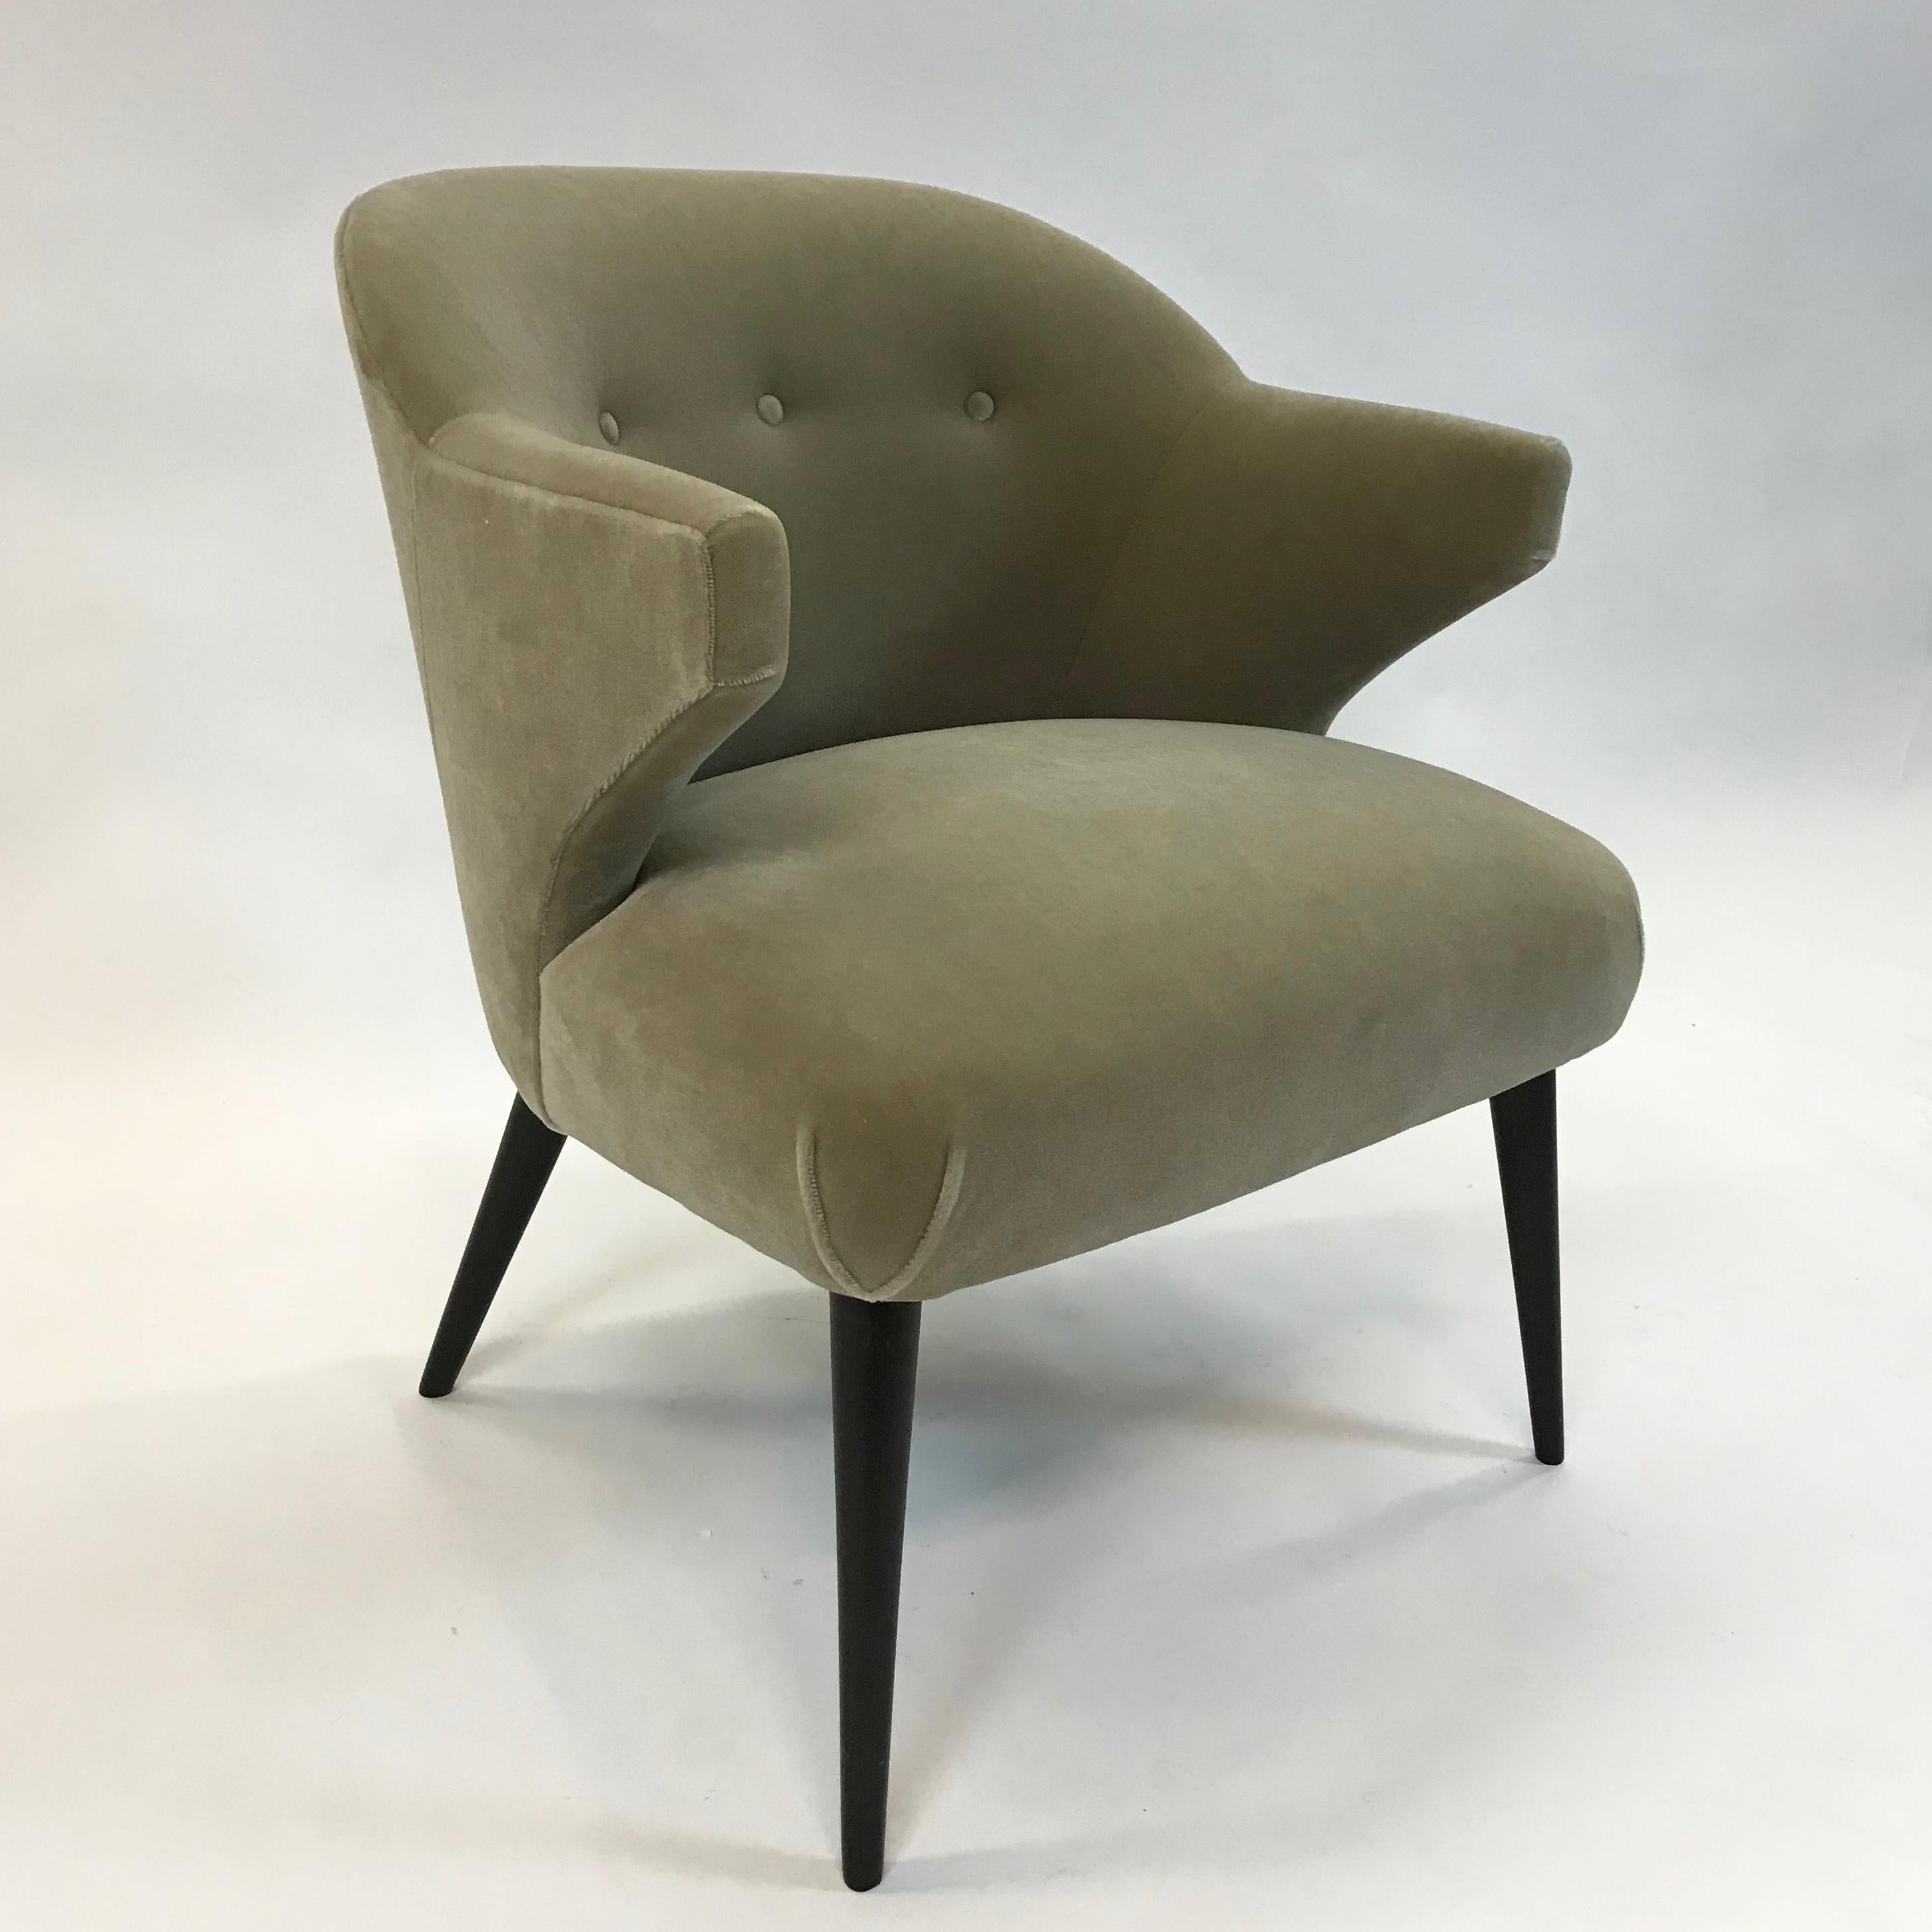 Mid Century Modern Mohair Wing Armchair For Sale at 1stdibs